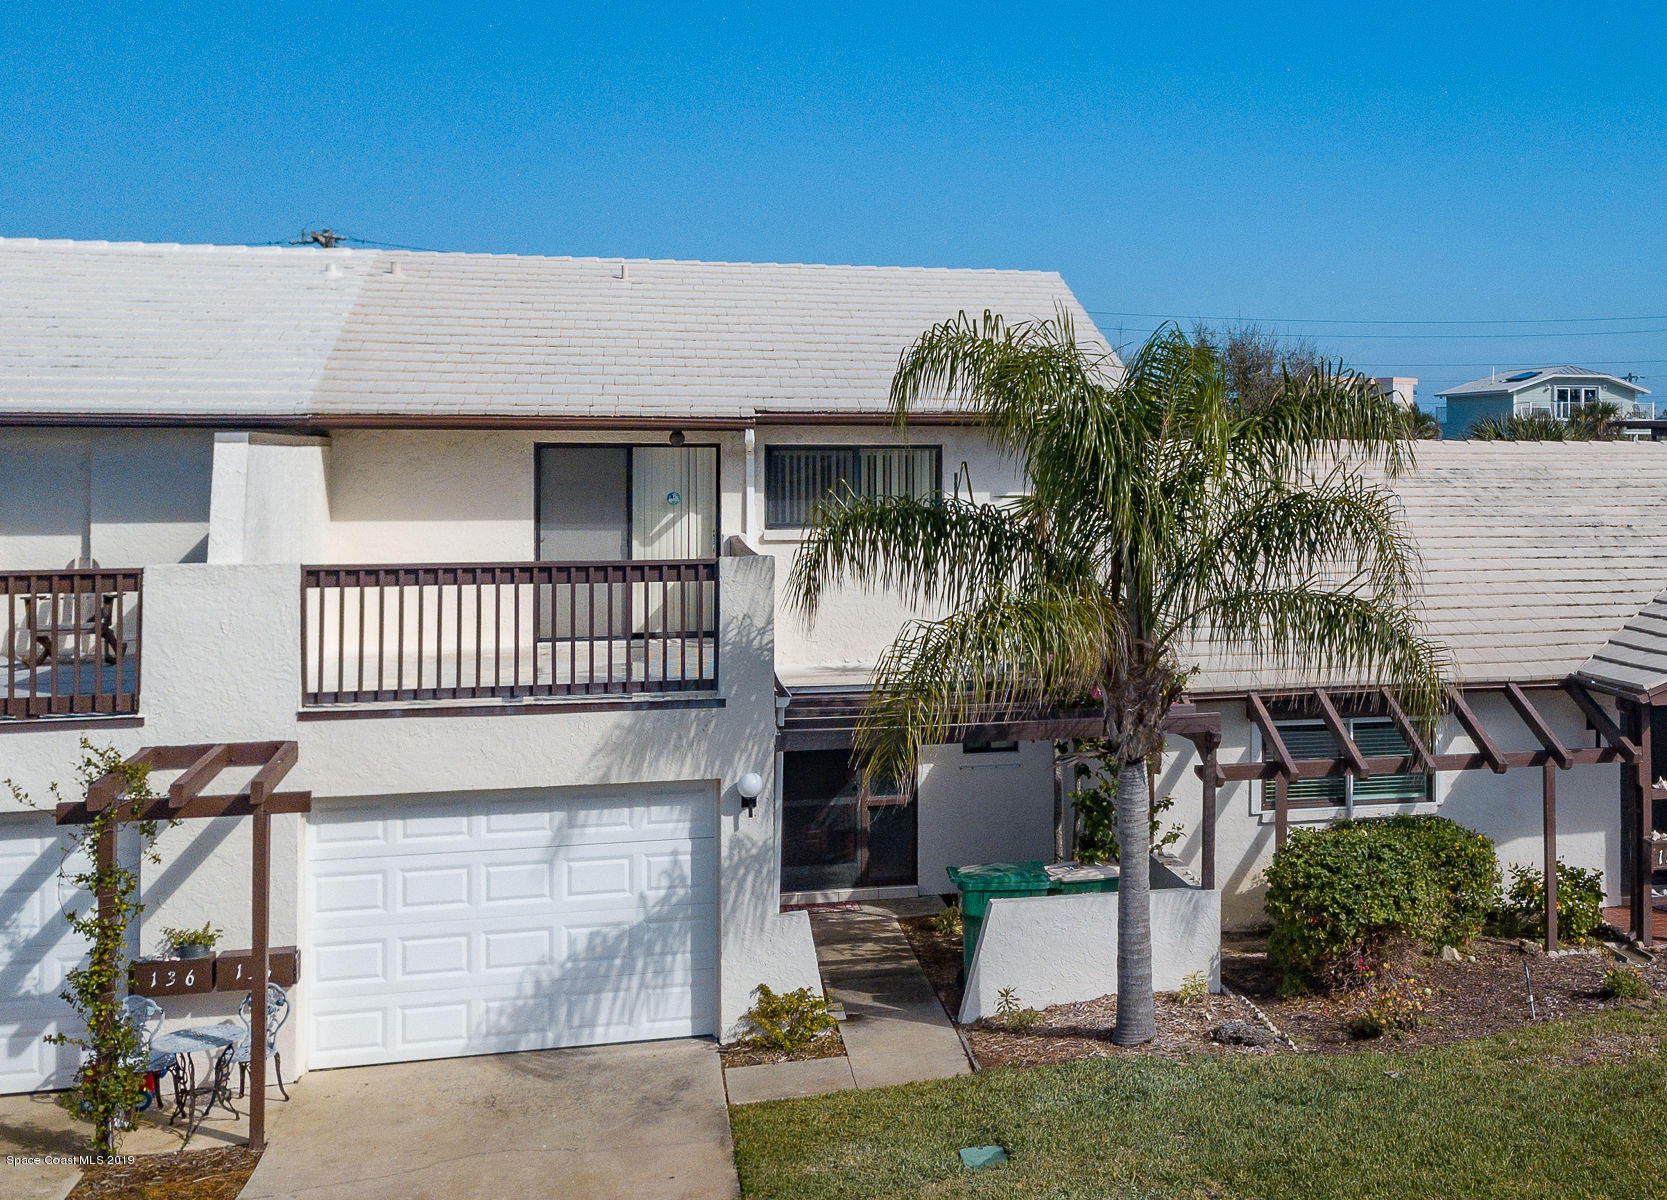 Single Family Home for Rent at 134 Skyline 134 Skyline Satellite Beach, Florida 32937 United States